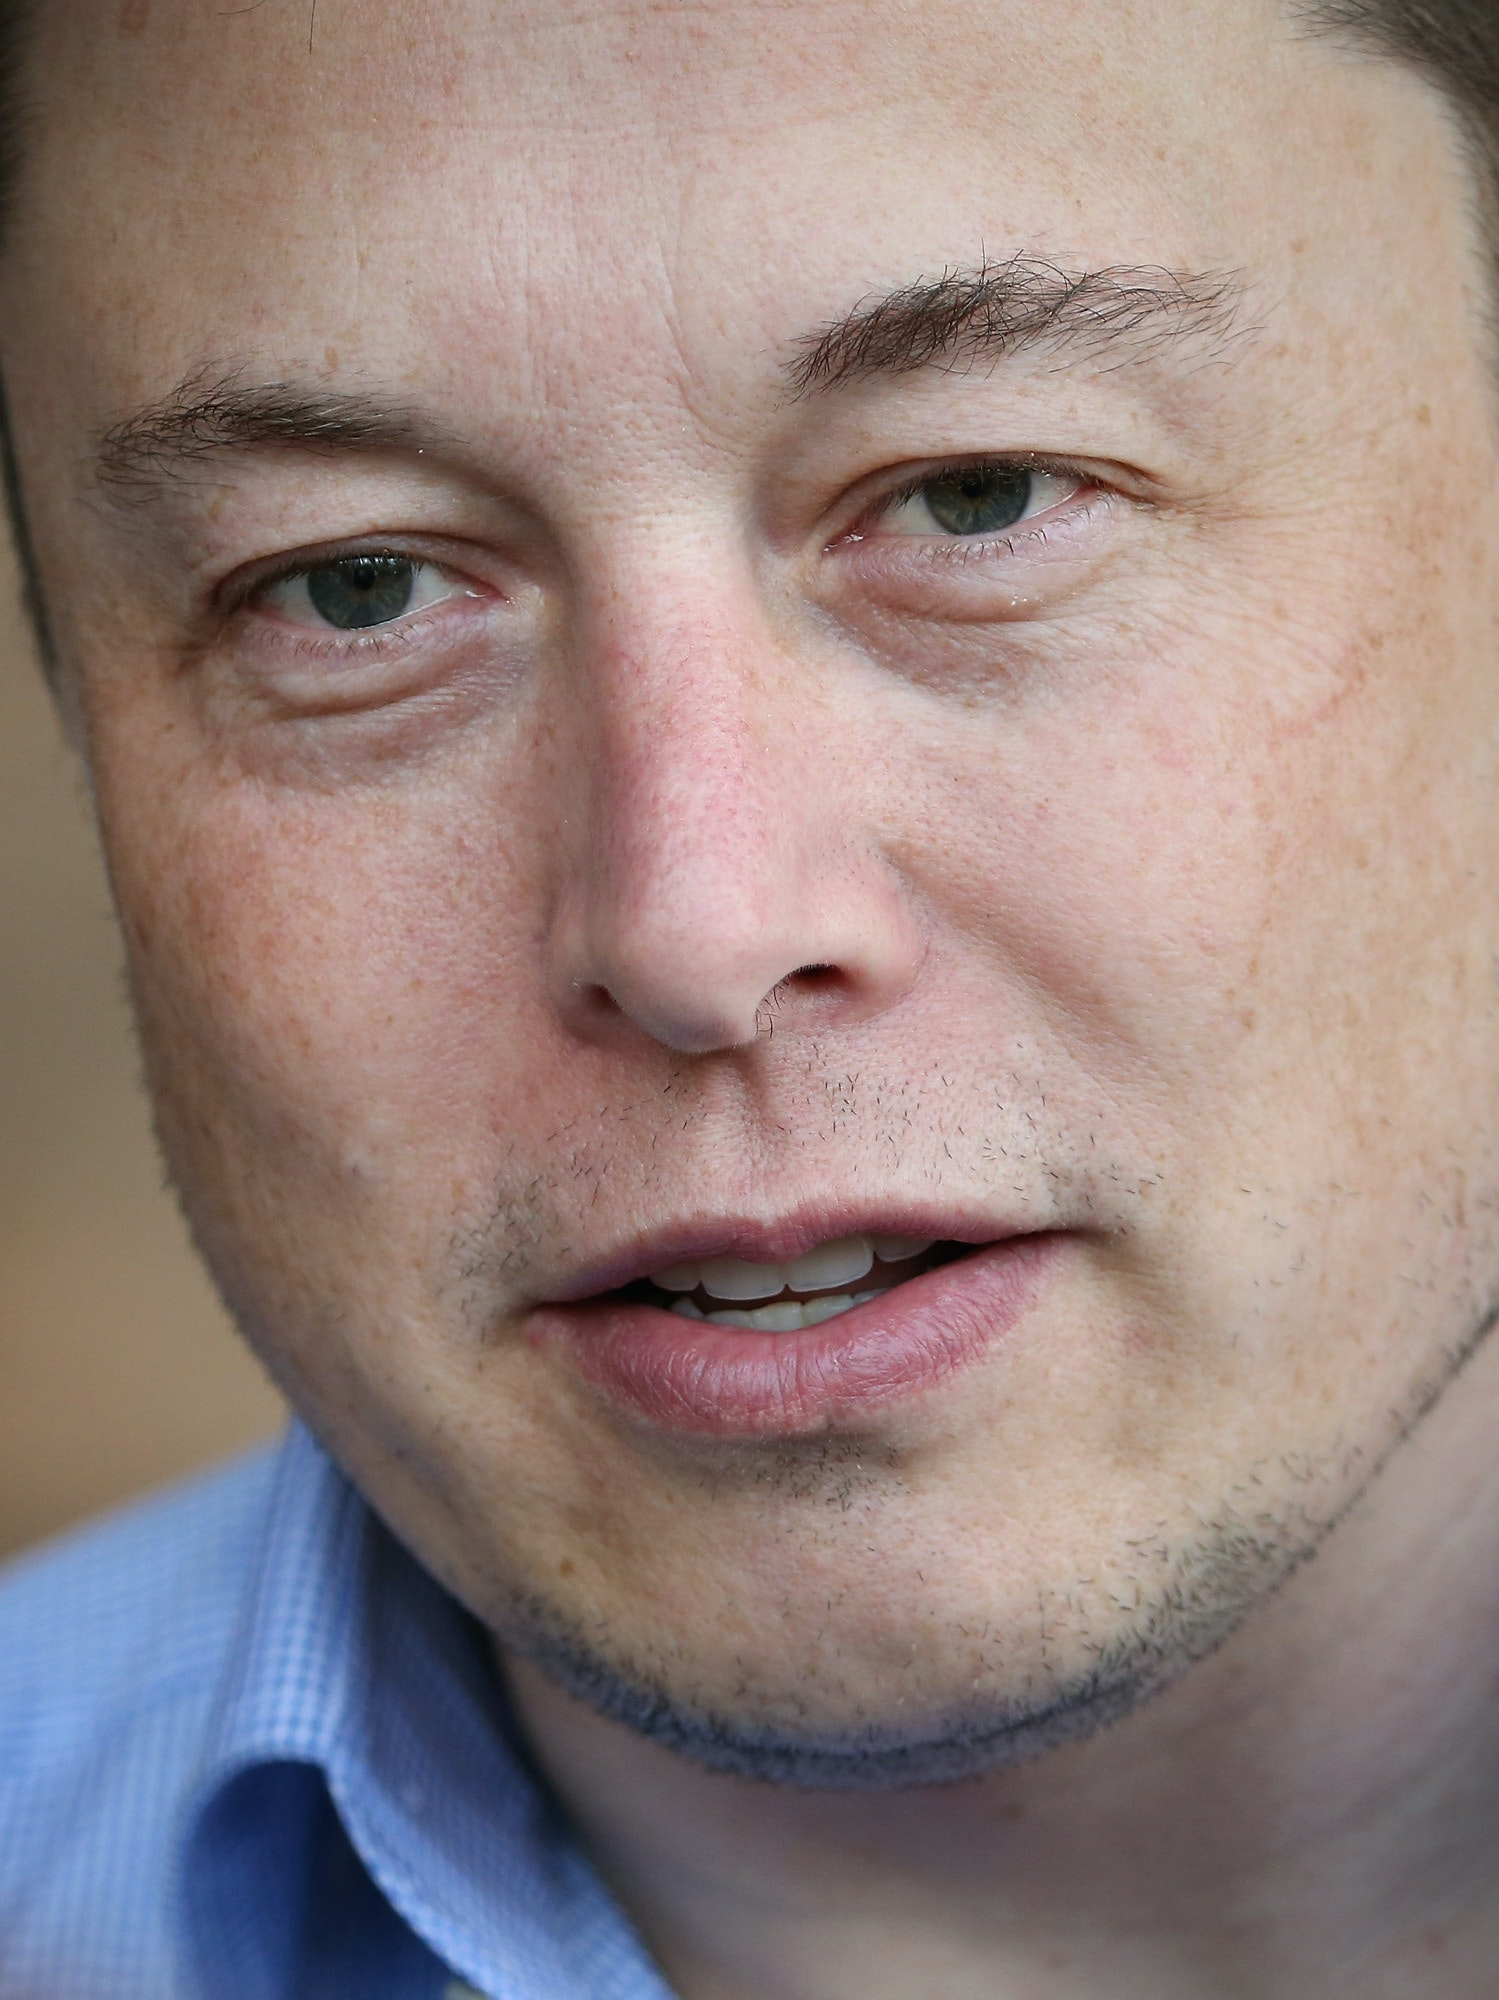 Elon Musk, CEO and CTO of SpaceX, CEO and product architect of Tesla Motors, and chairman of SolarCity, attends the Allen & Company Sun Valley Conference on July 7, 2015 in Sun Valley, Idaho.